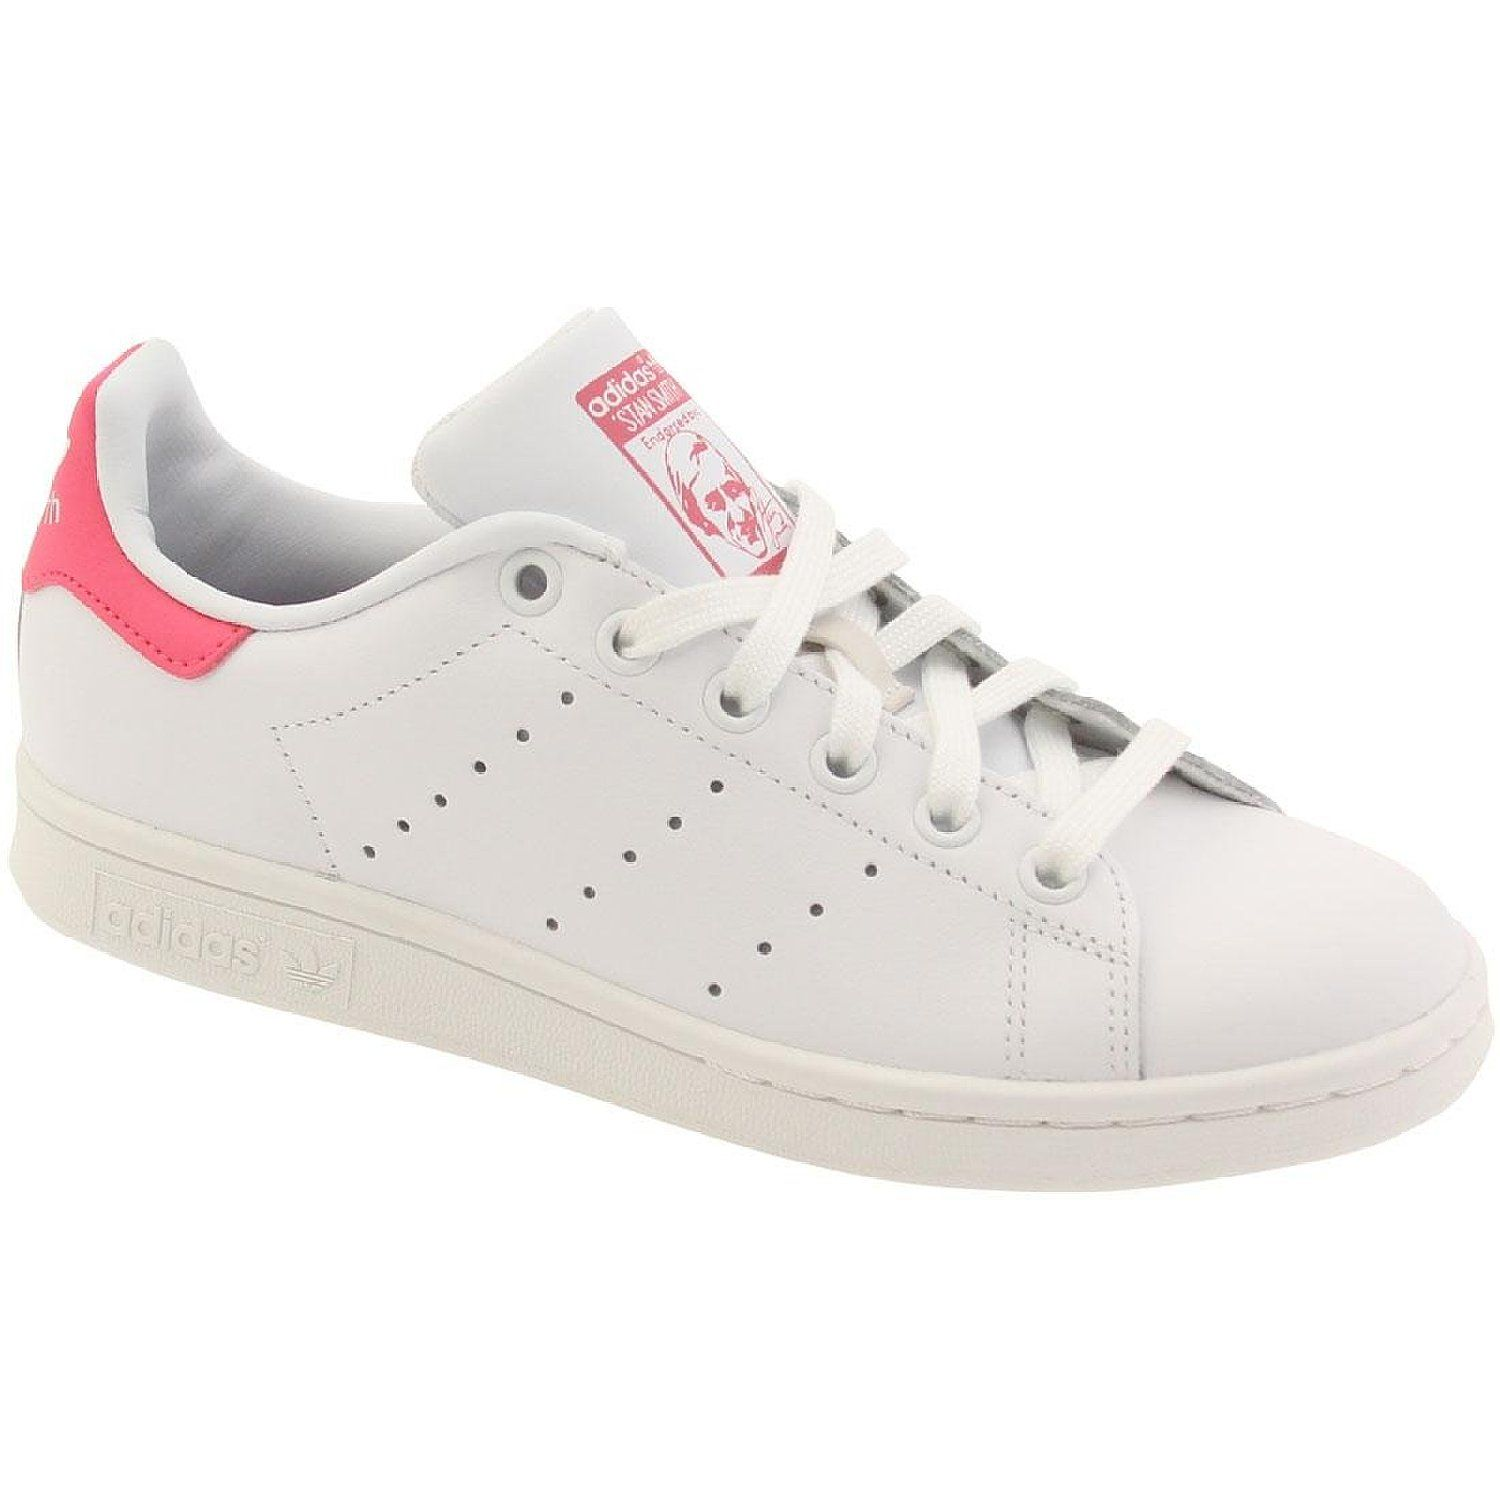 buy online 1cb21 3c181 Adidas Stan Smith Pink Amazon